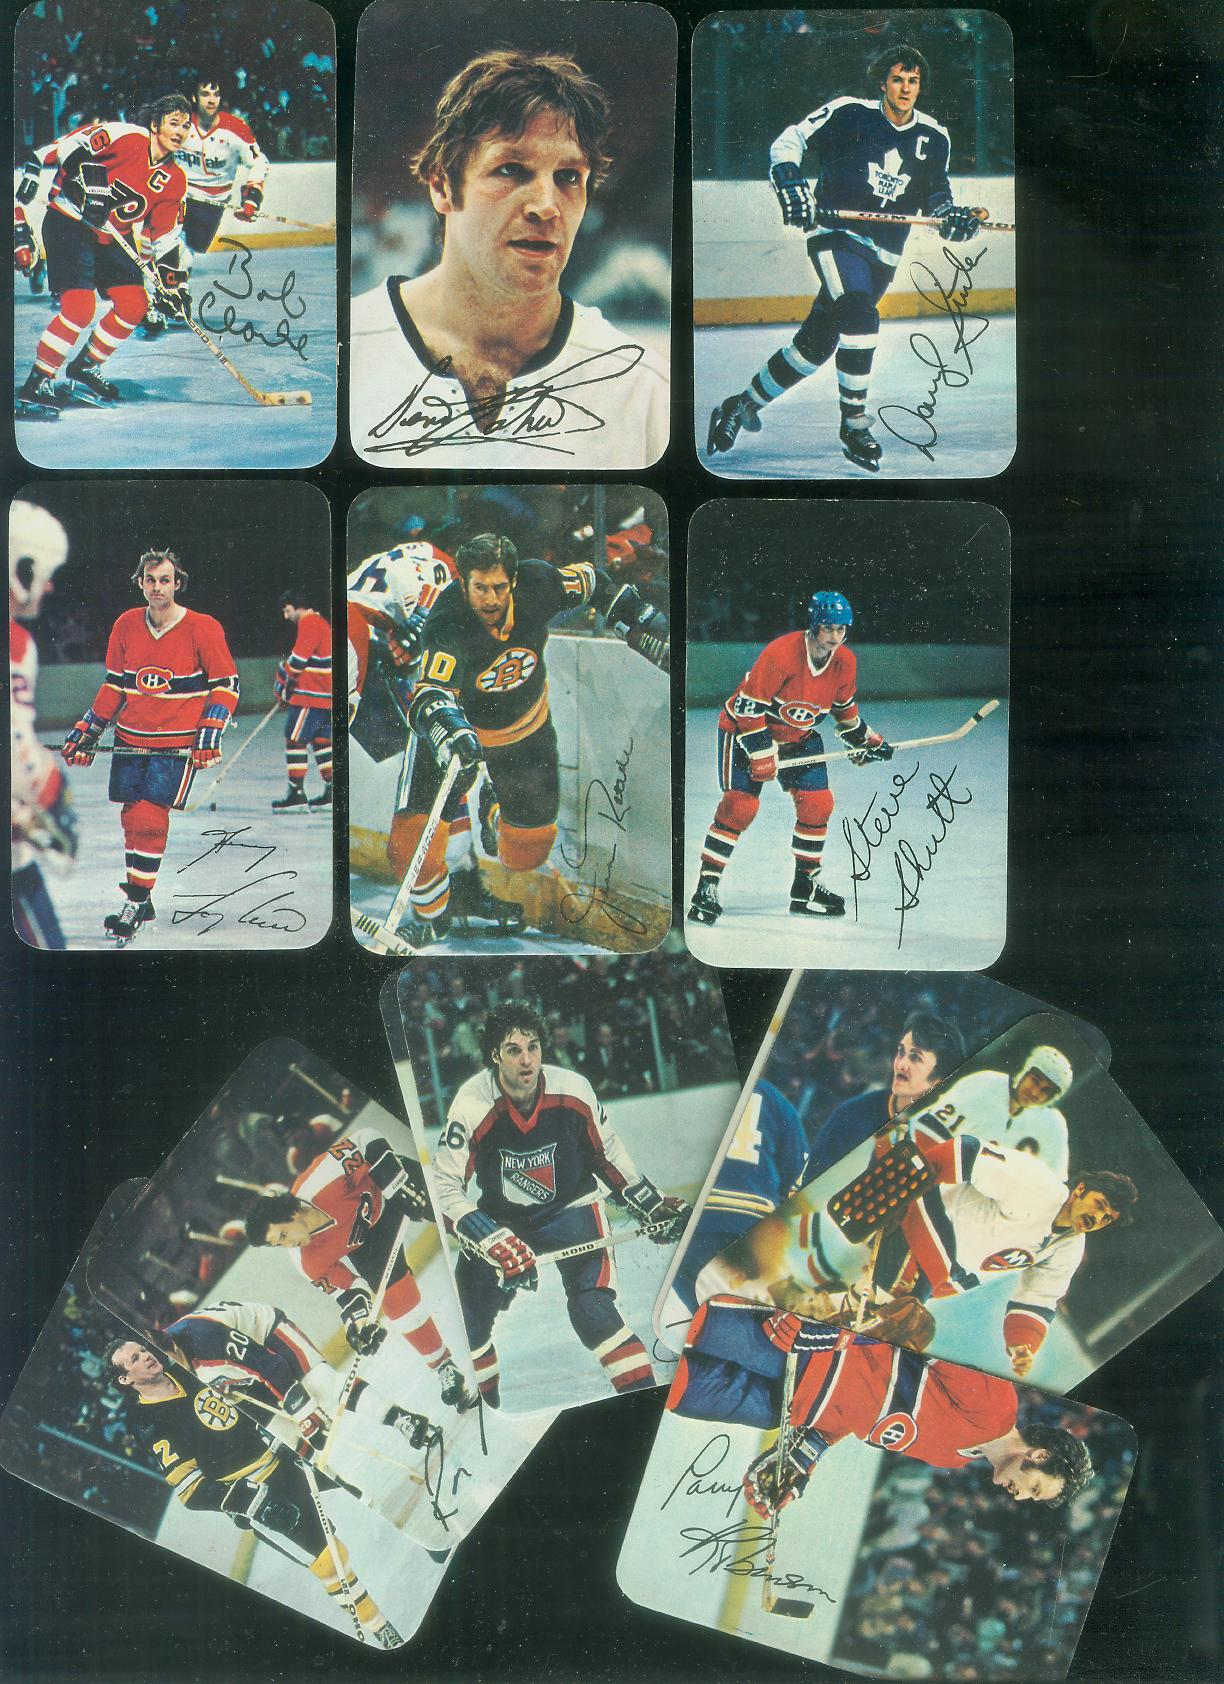 1977-78 Topps/O-Pee-Chee Hockey GLOSSY  - Lot of (14) different Hockey cards value